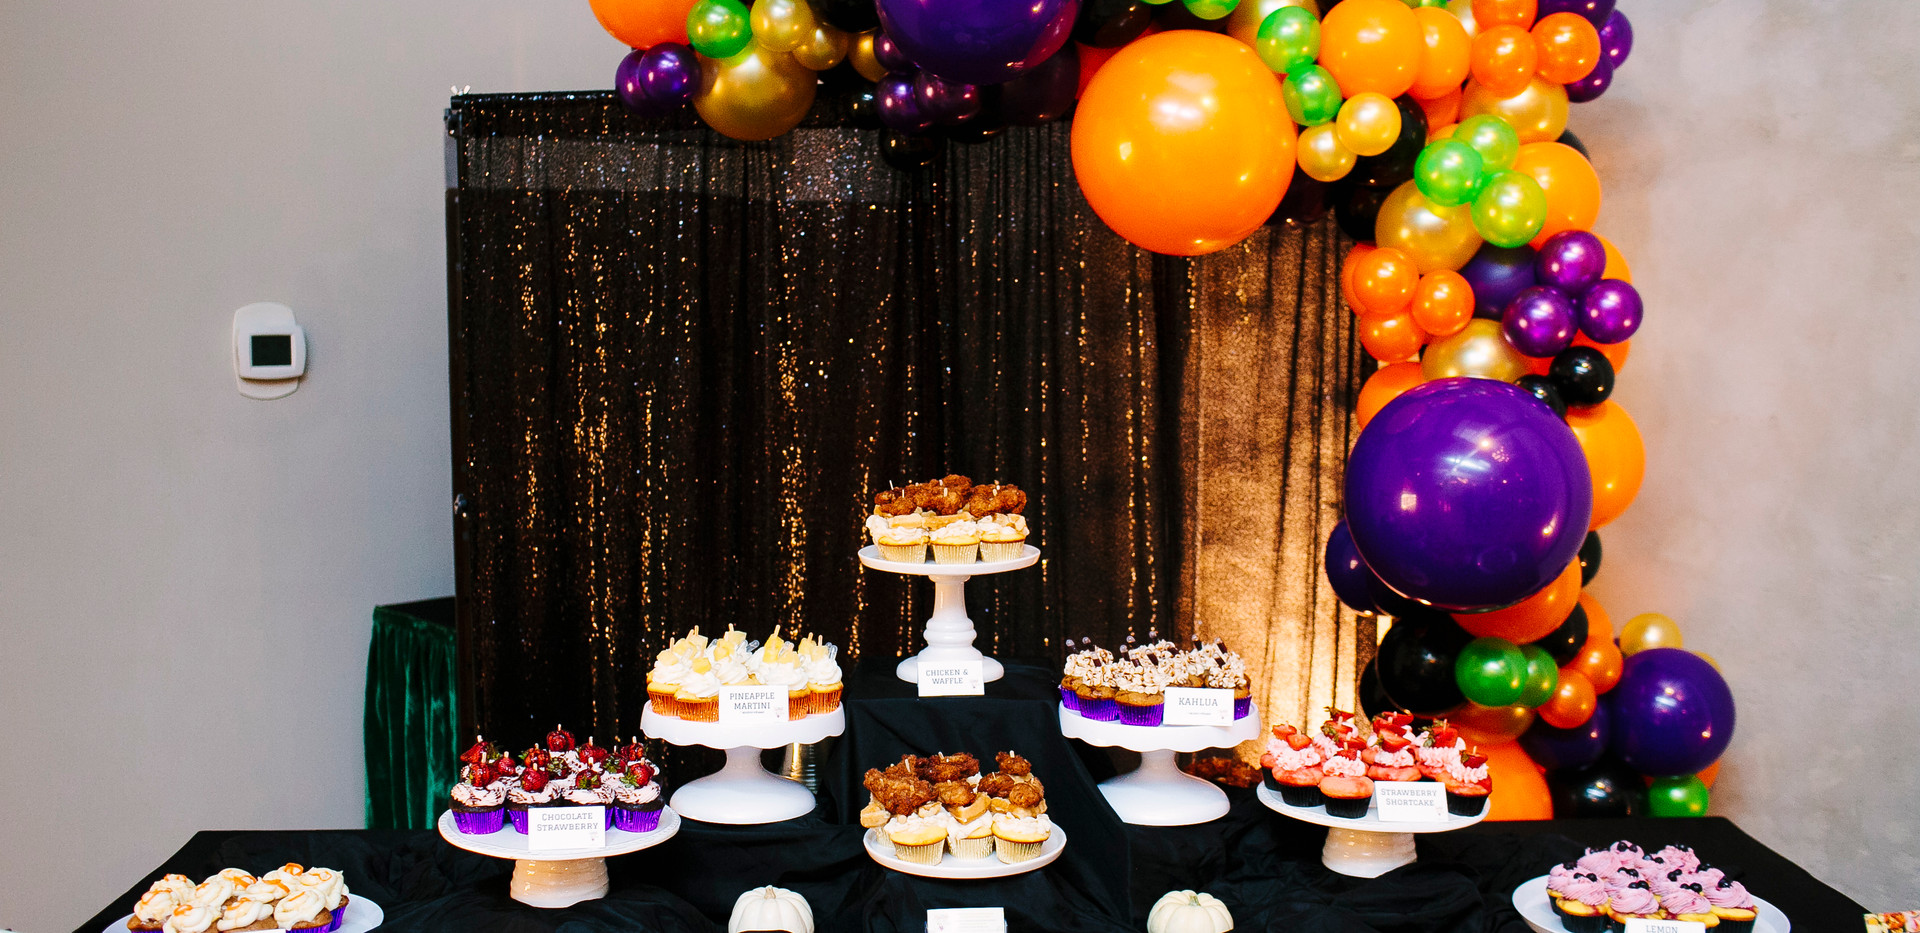 Dessert table for Randy's 50th Birthday Party. Cupcakes made by The Kupcake Bar. Balloon garand by Sitting Pretty Event Rental